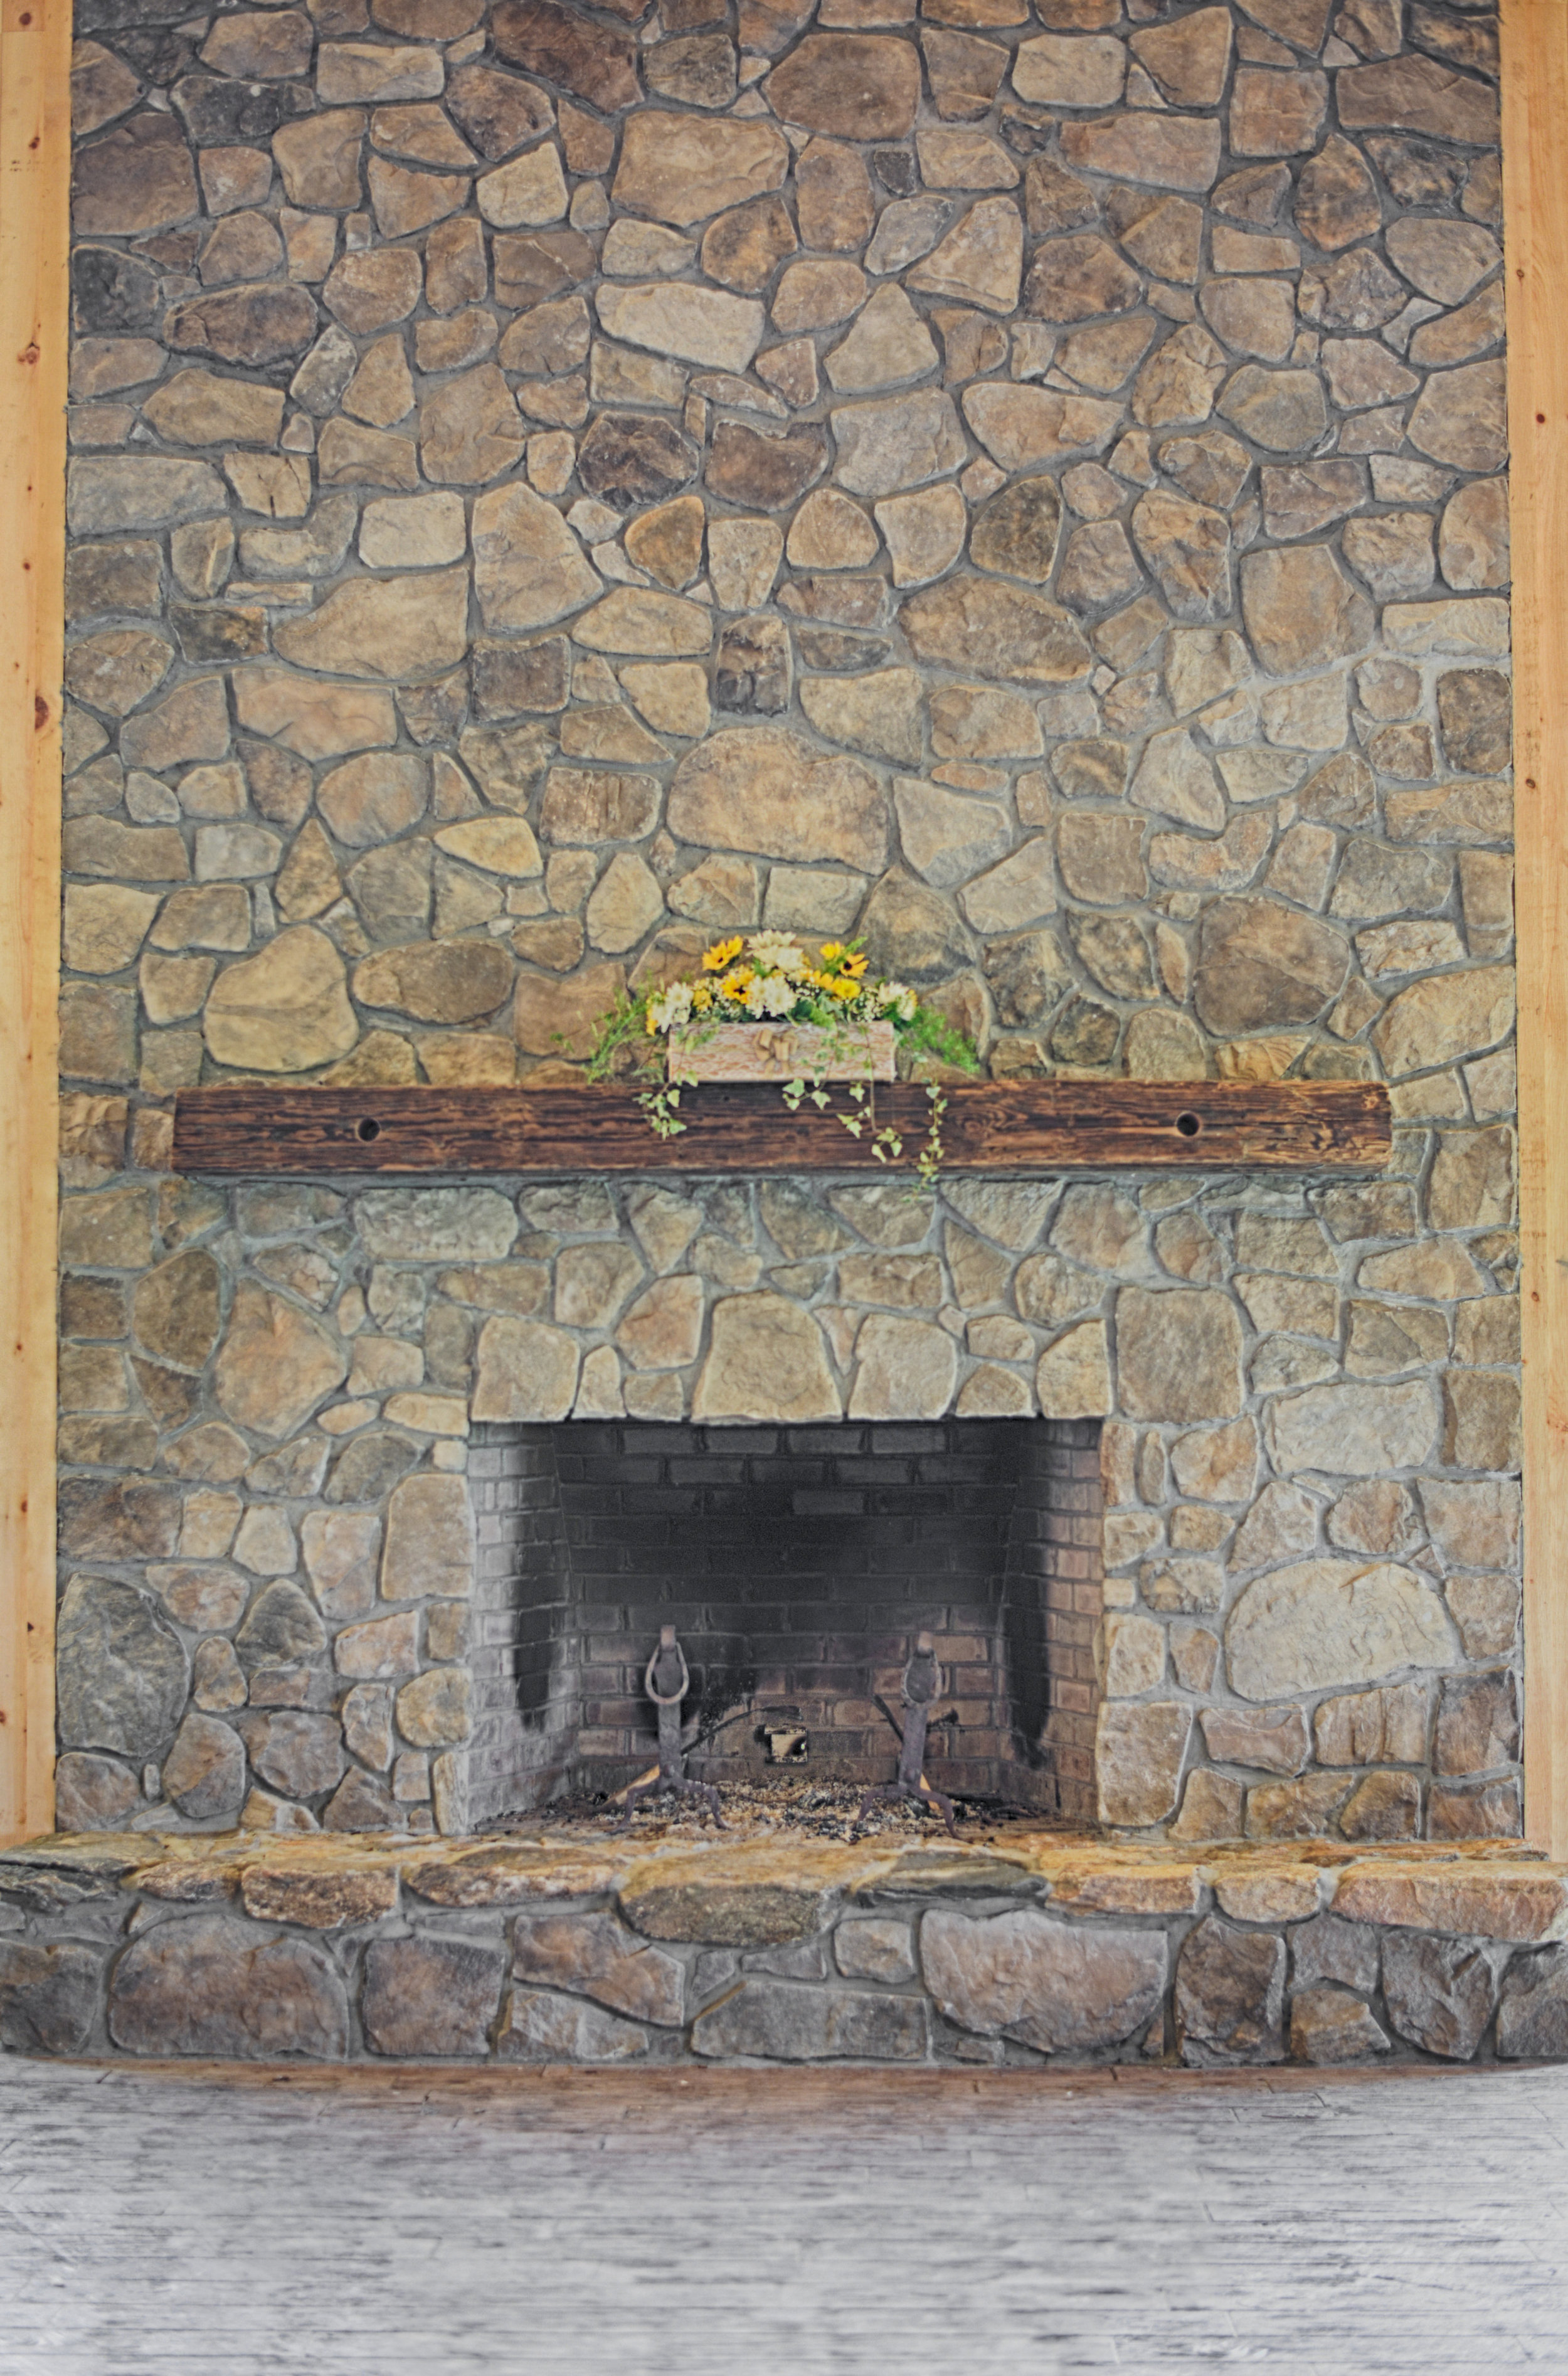 Our floor-to-ceiling stone fireplace makes for a stunning backdrop in your photos